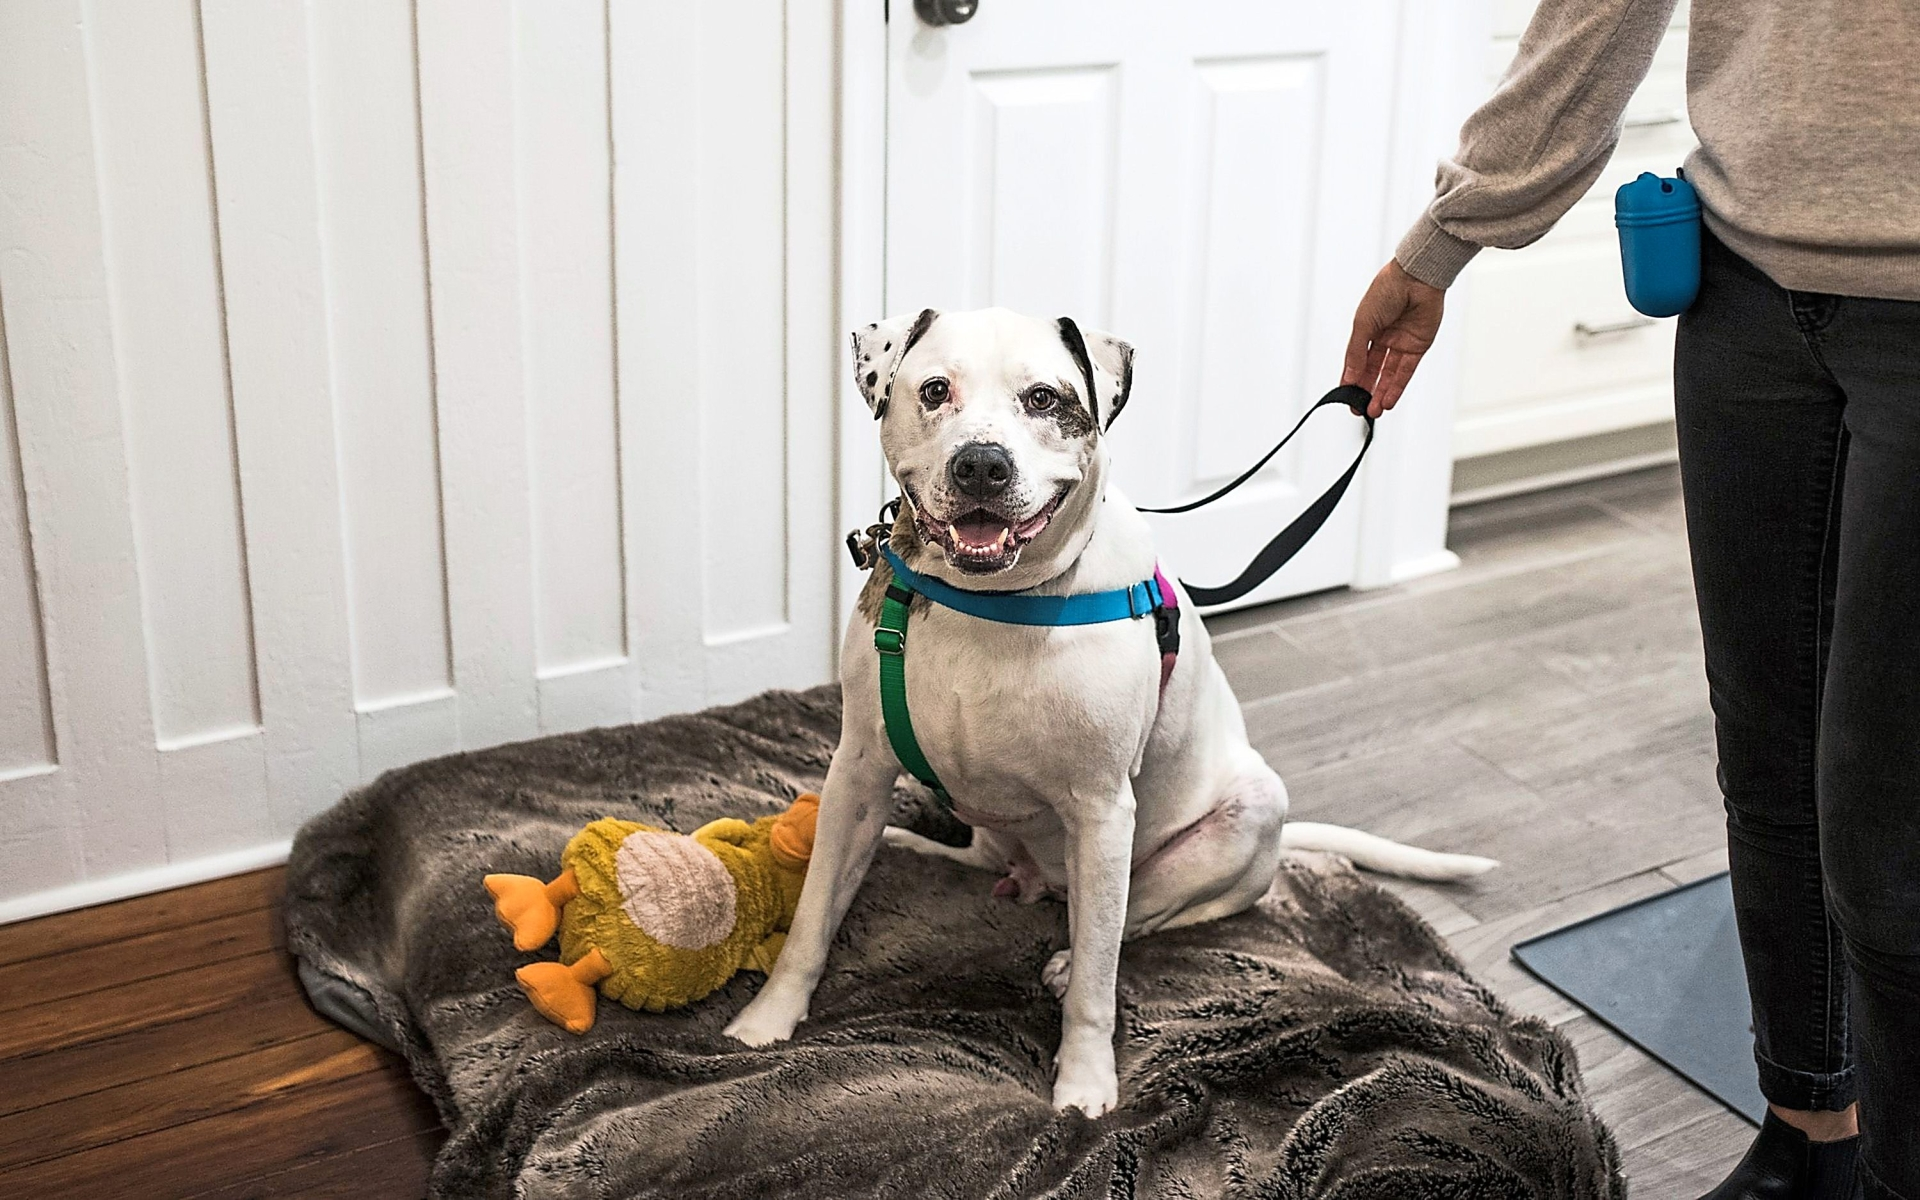 Bentley finally has a new place to call home, thanks to a loving couple in Graduate Hospital, Philadelphia, the United States.